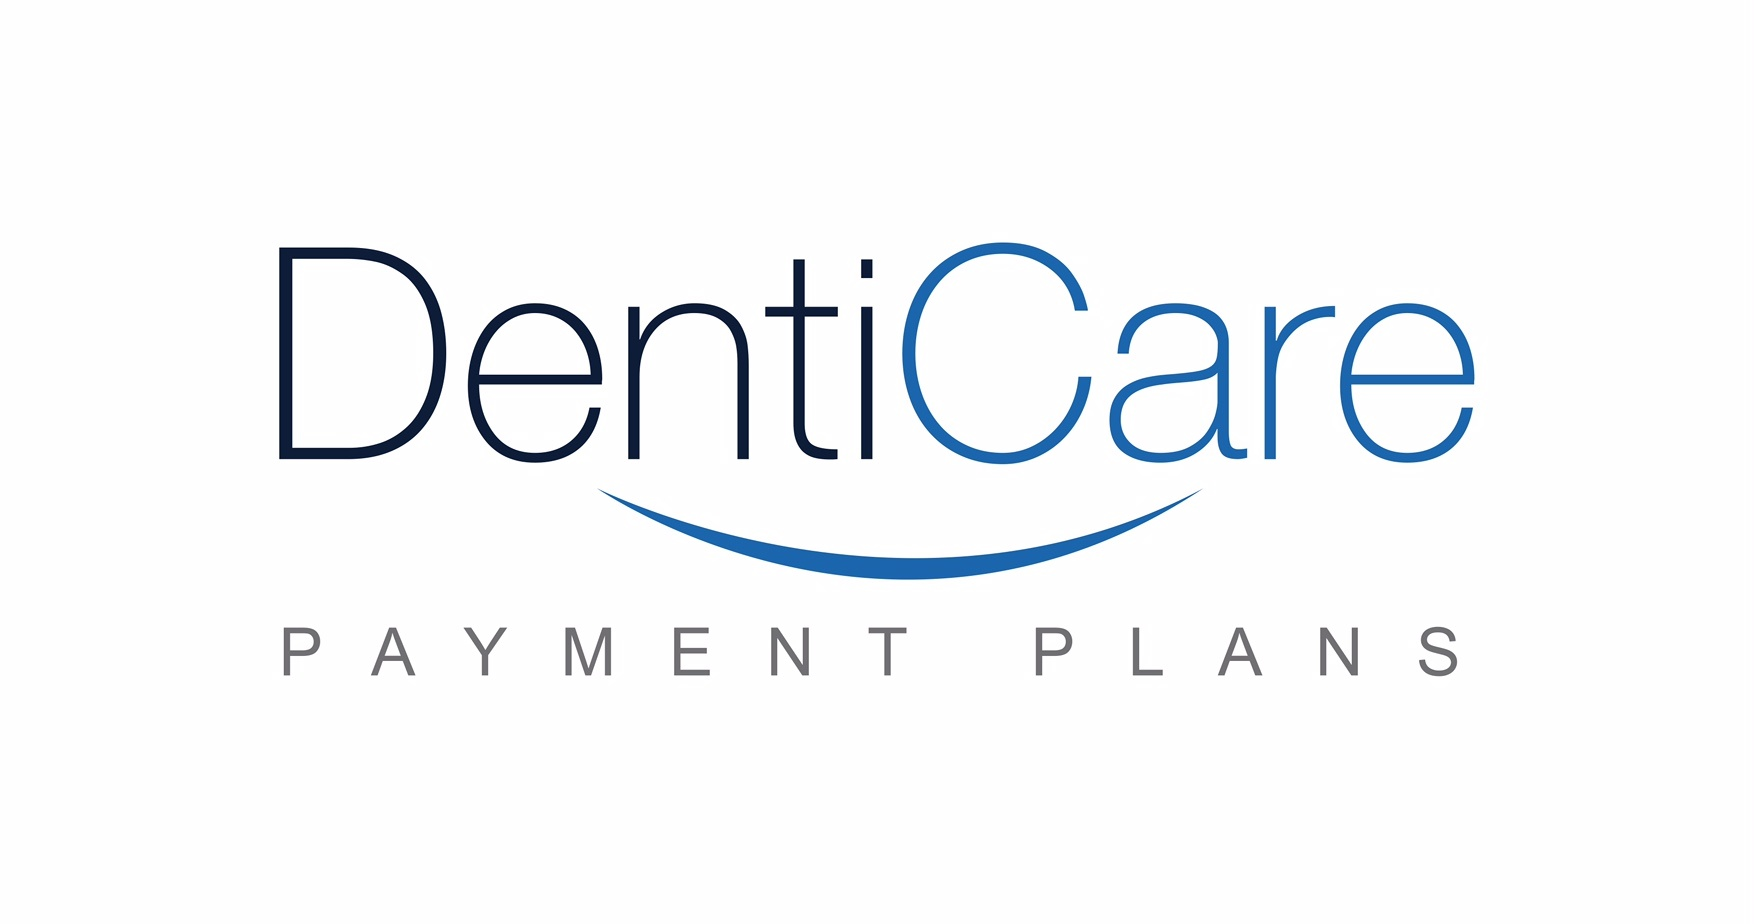 Denticare at New Age Dental Bundoora